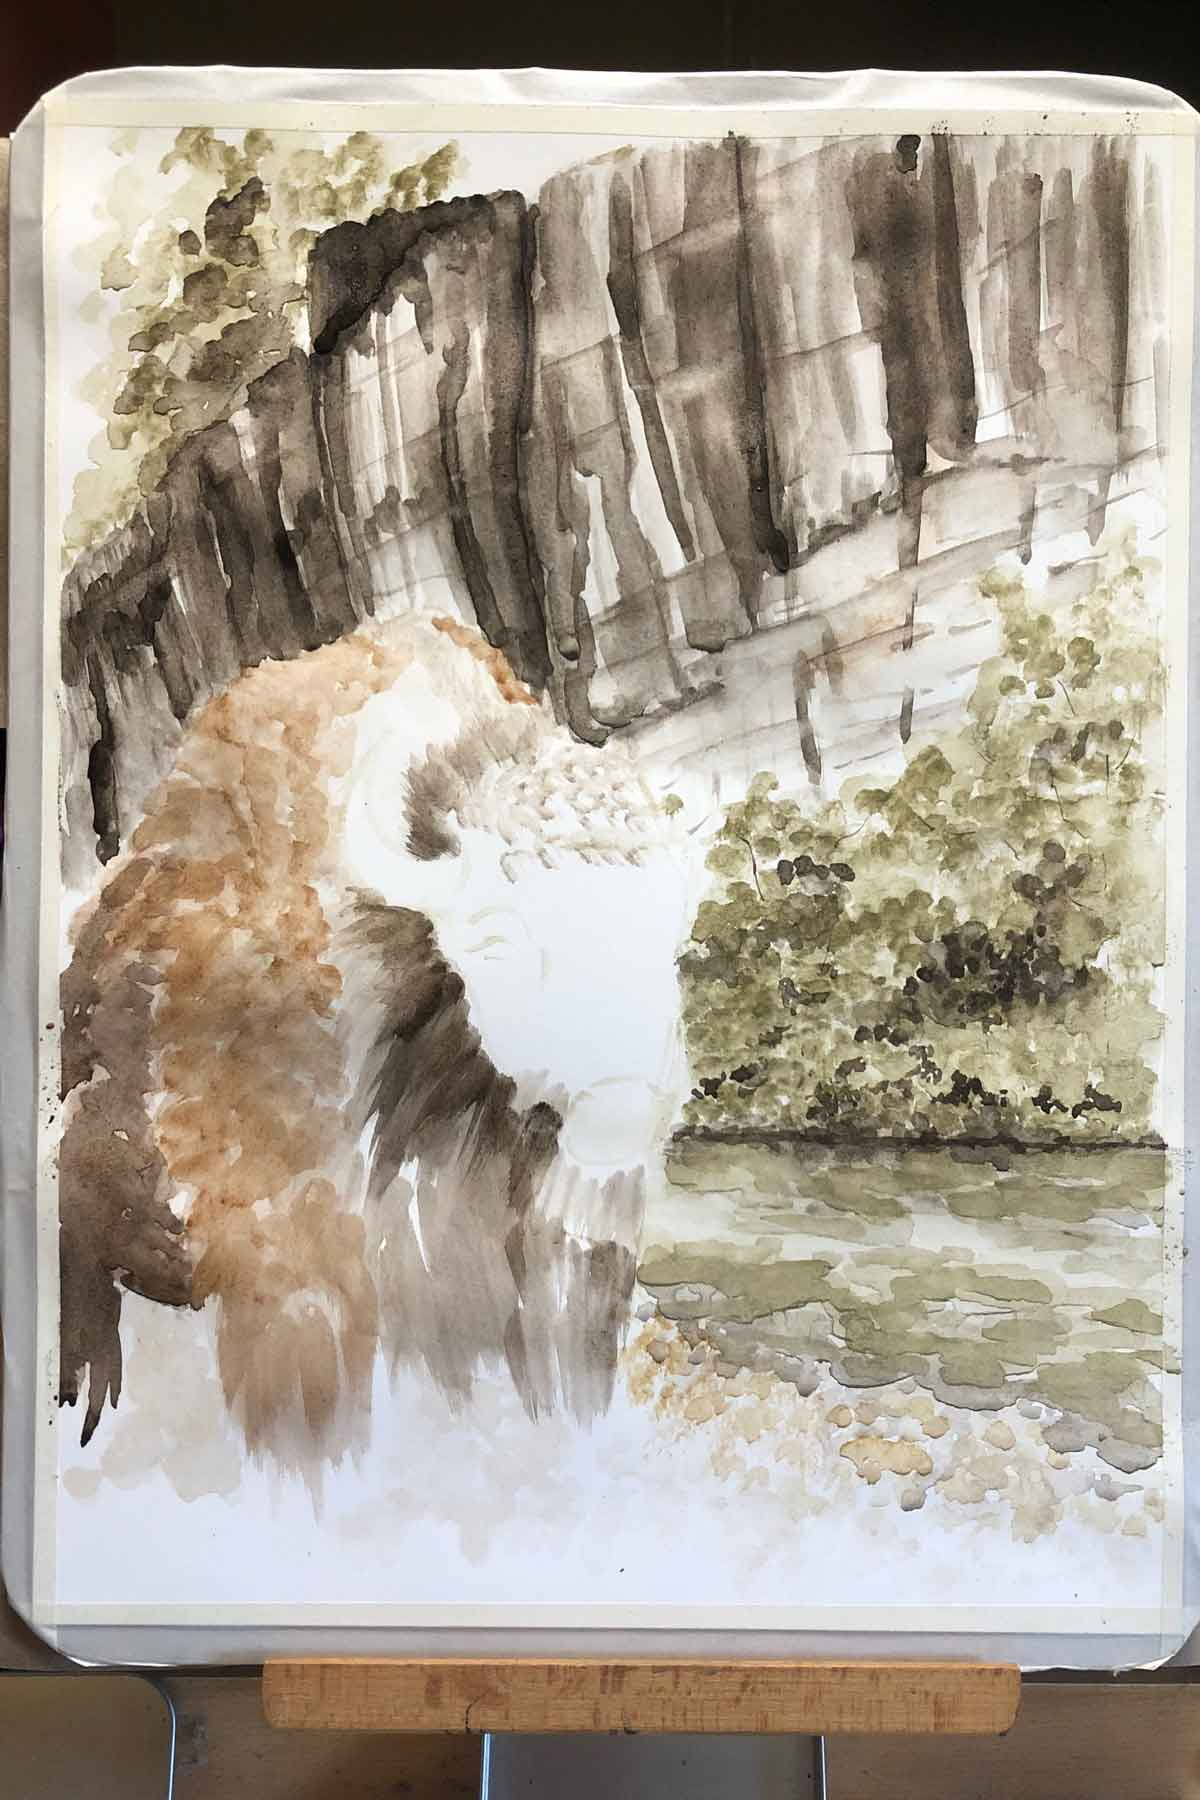 Blocking in color on the buffalo, namesake of the Buffalo National River.